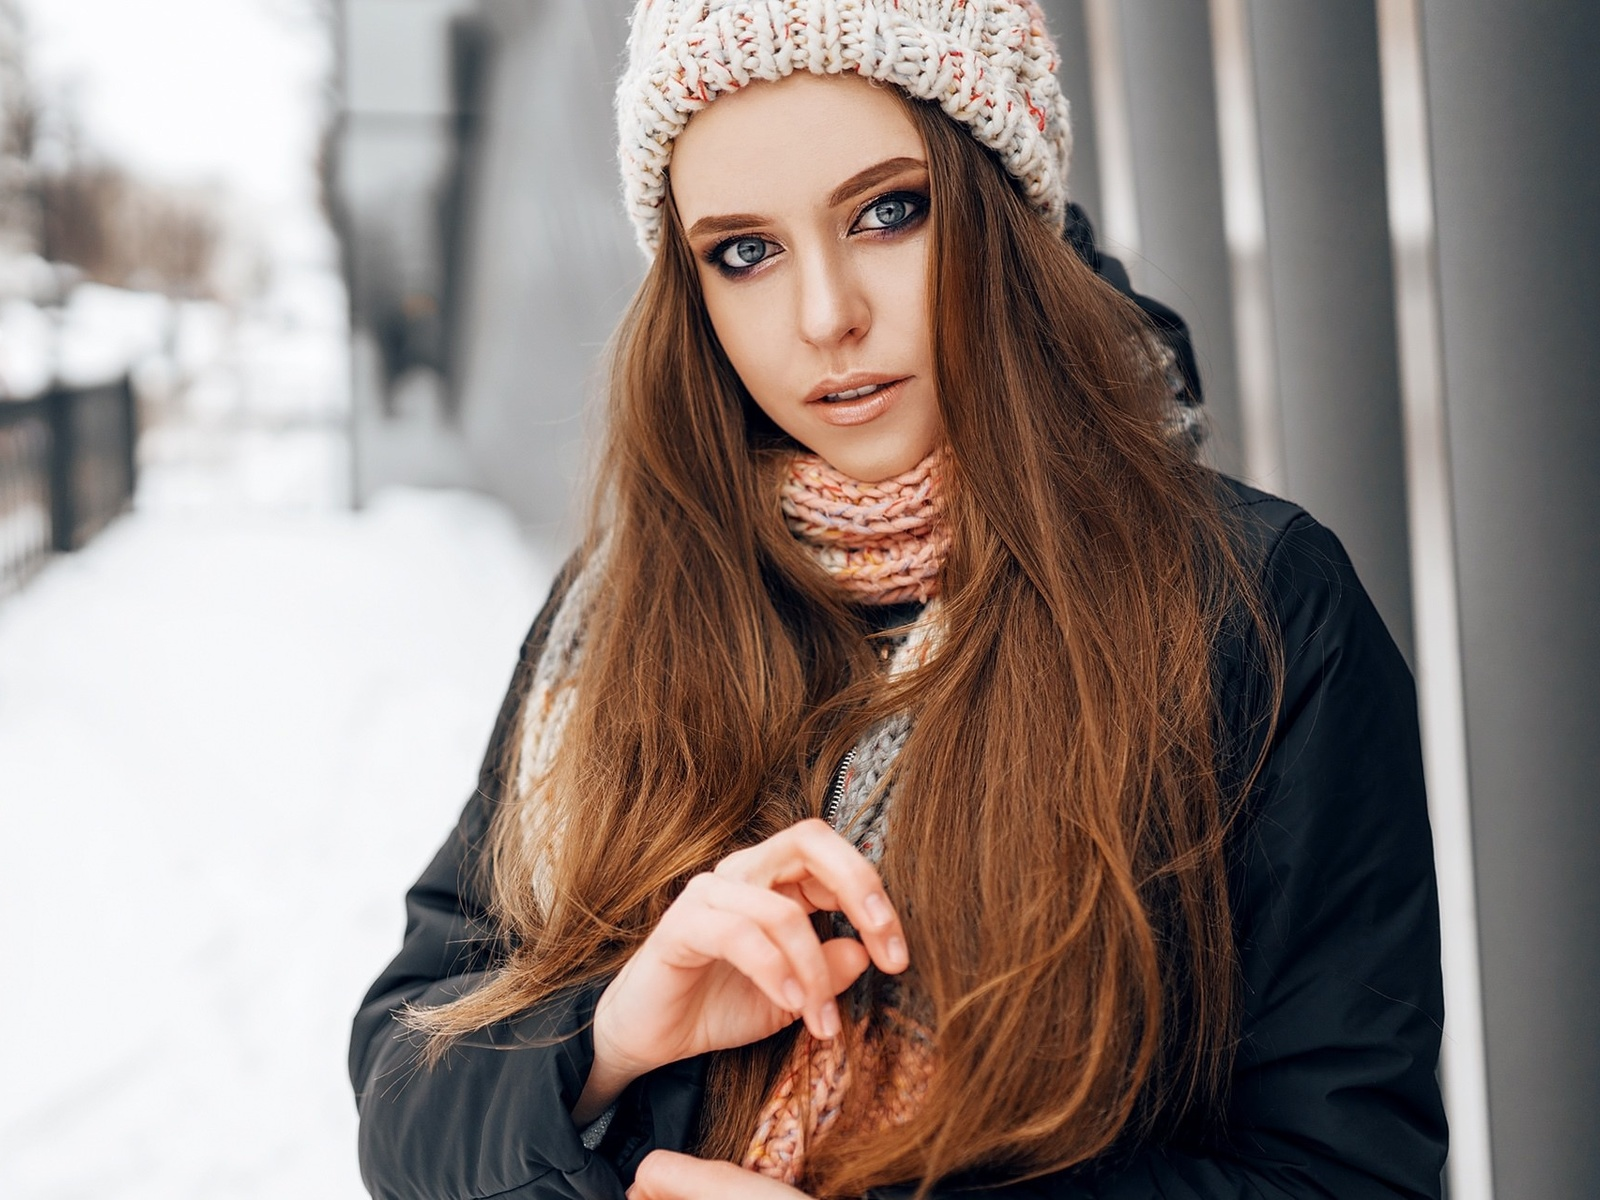 women, portrait, winter, scarf, coats, women outdoors, snow, blue eyes, long hair